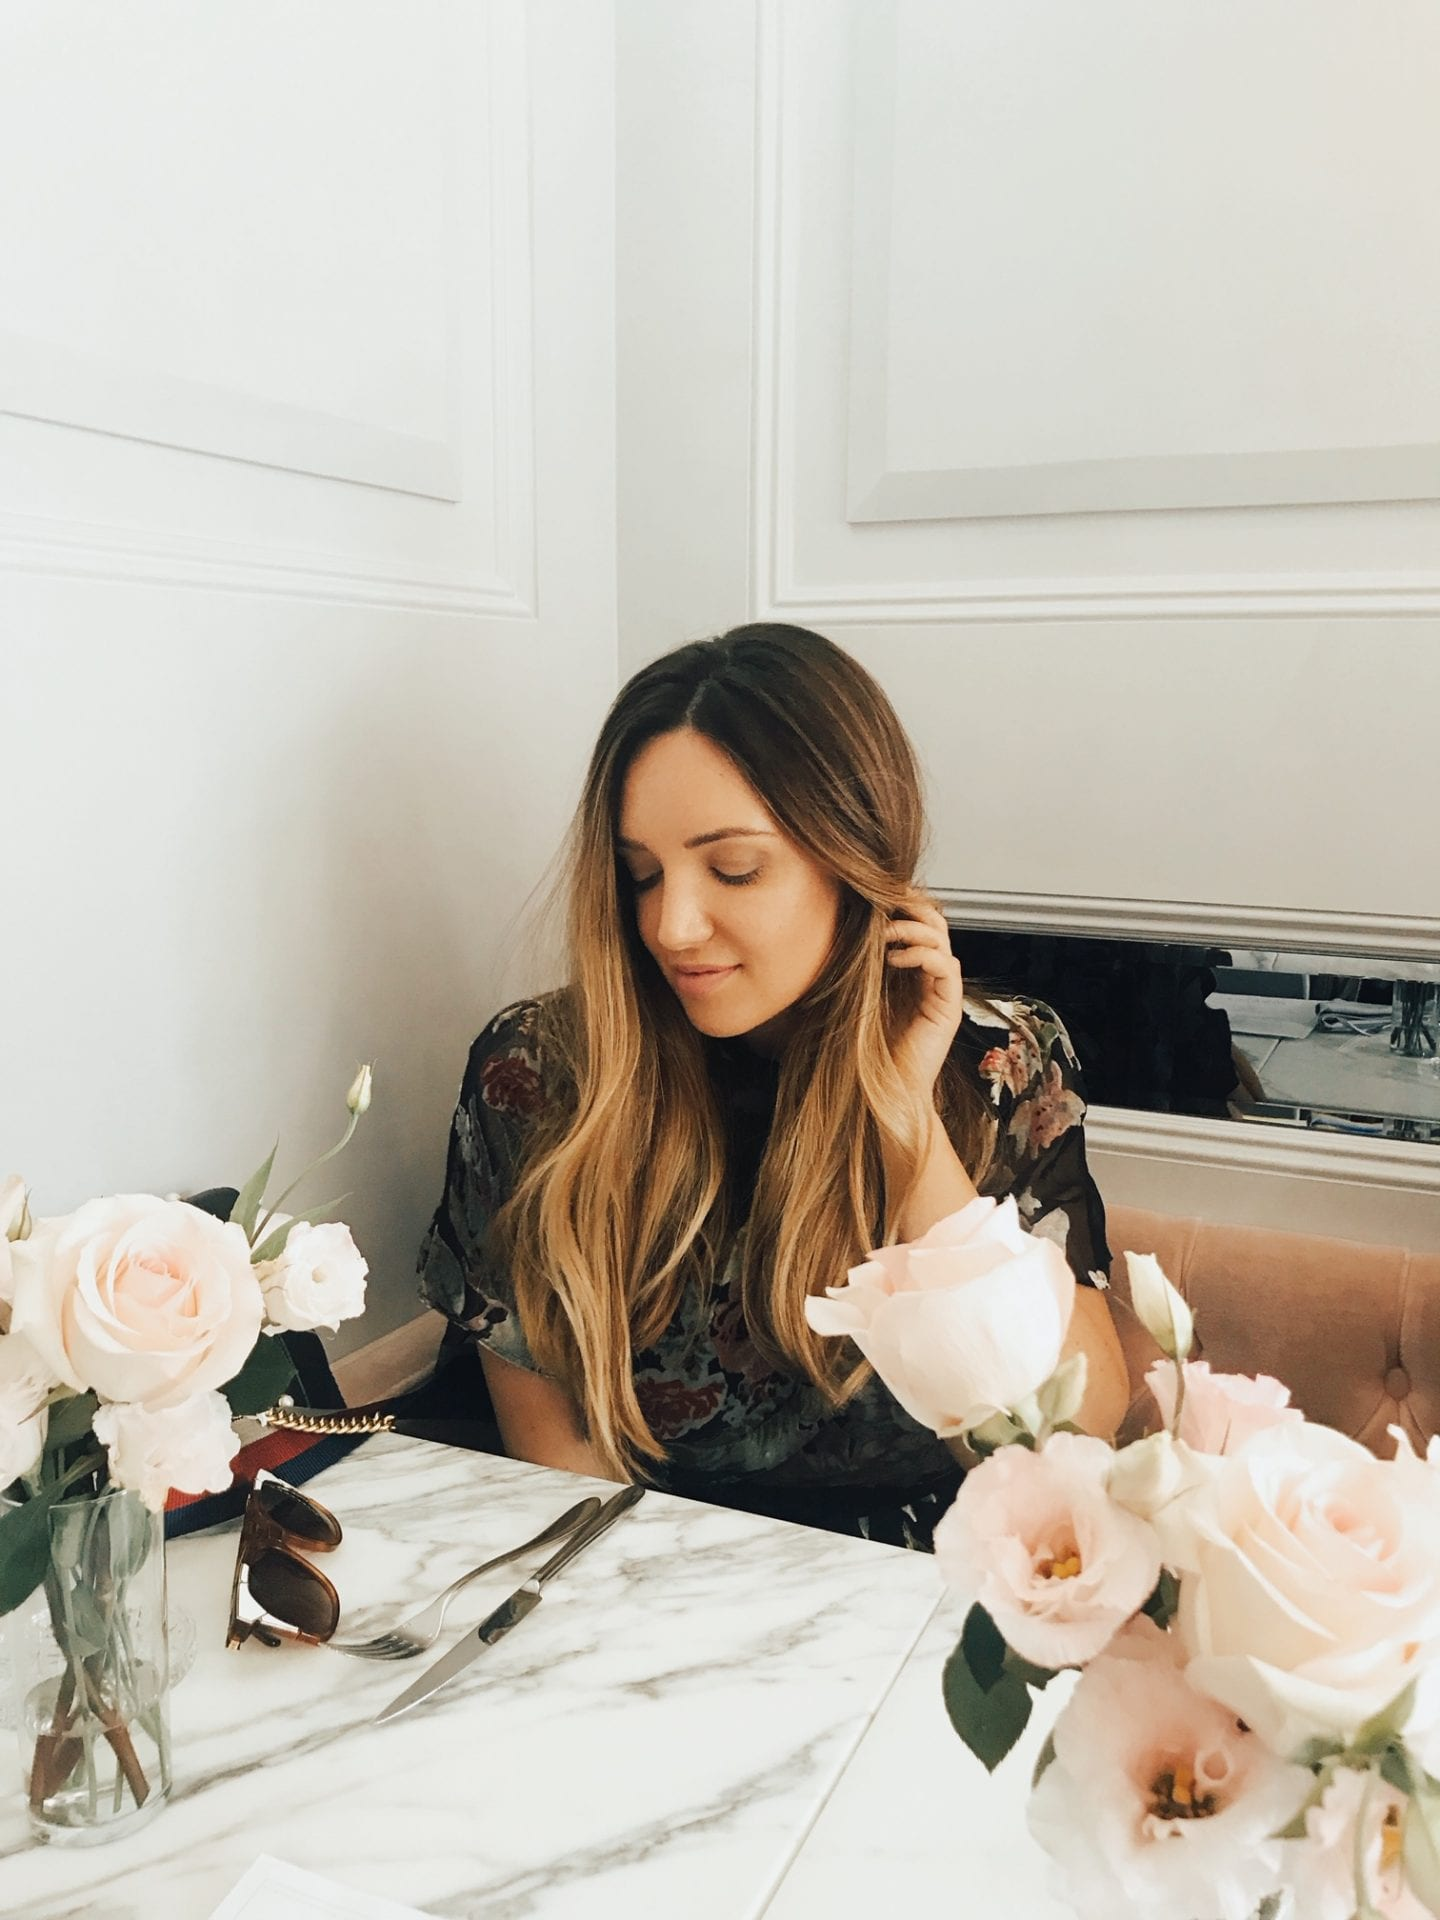 Best Valentine's Day Gifts for Her by popular San Francisco life and style blog, Just Add Glam: image of a woman sitting at a marble table with pink roses on it.